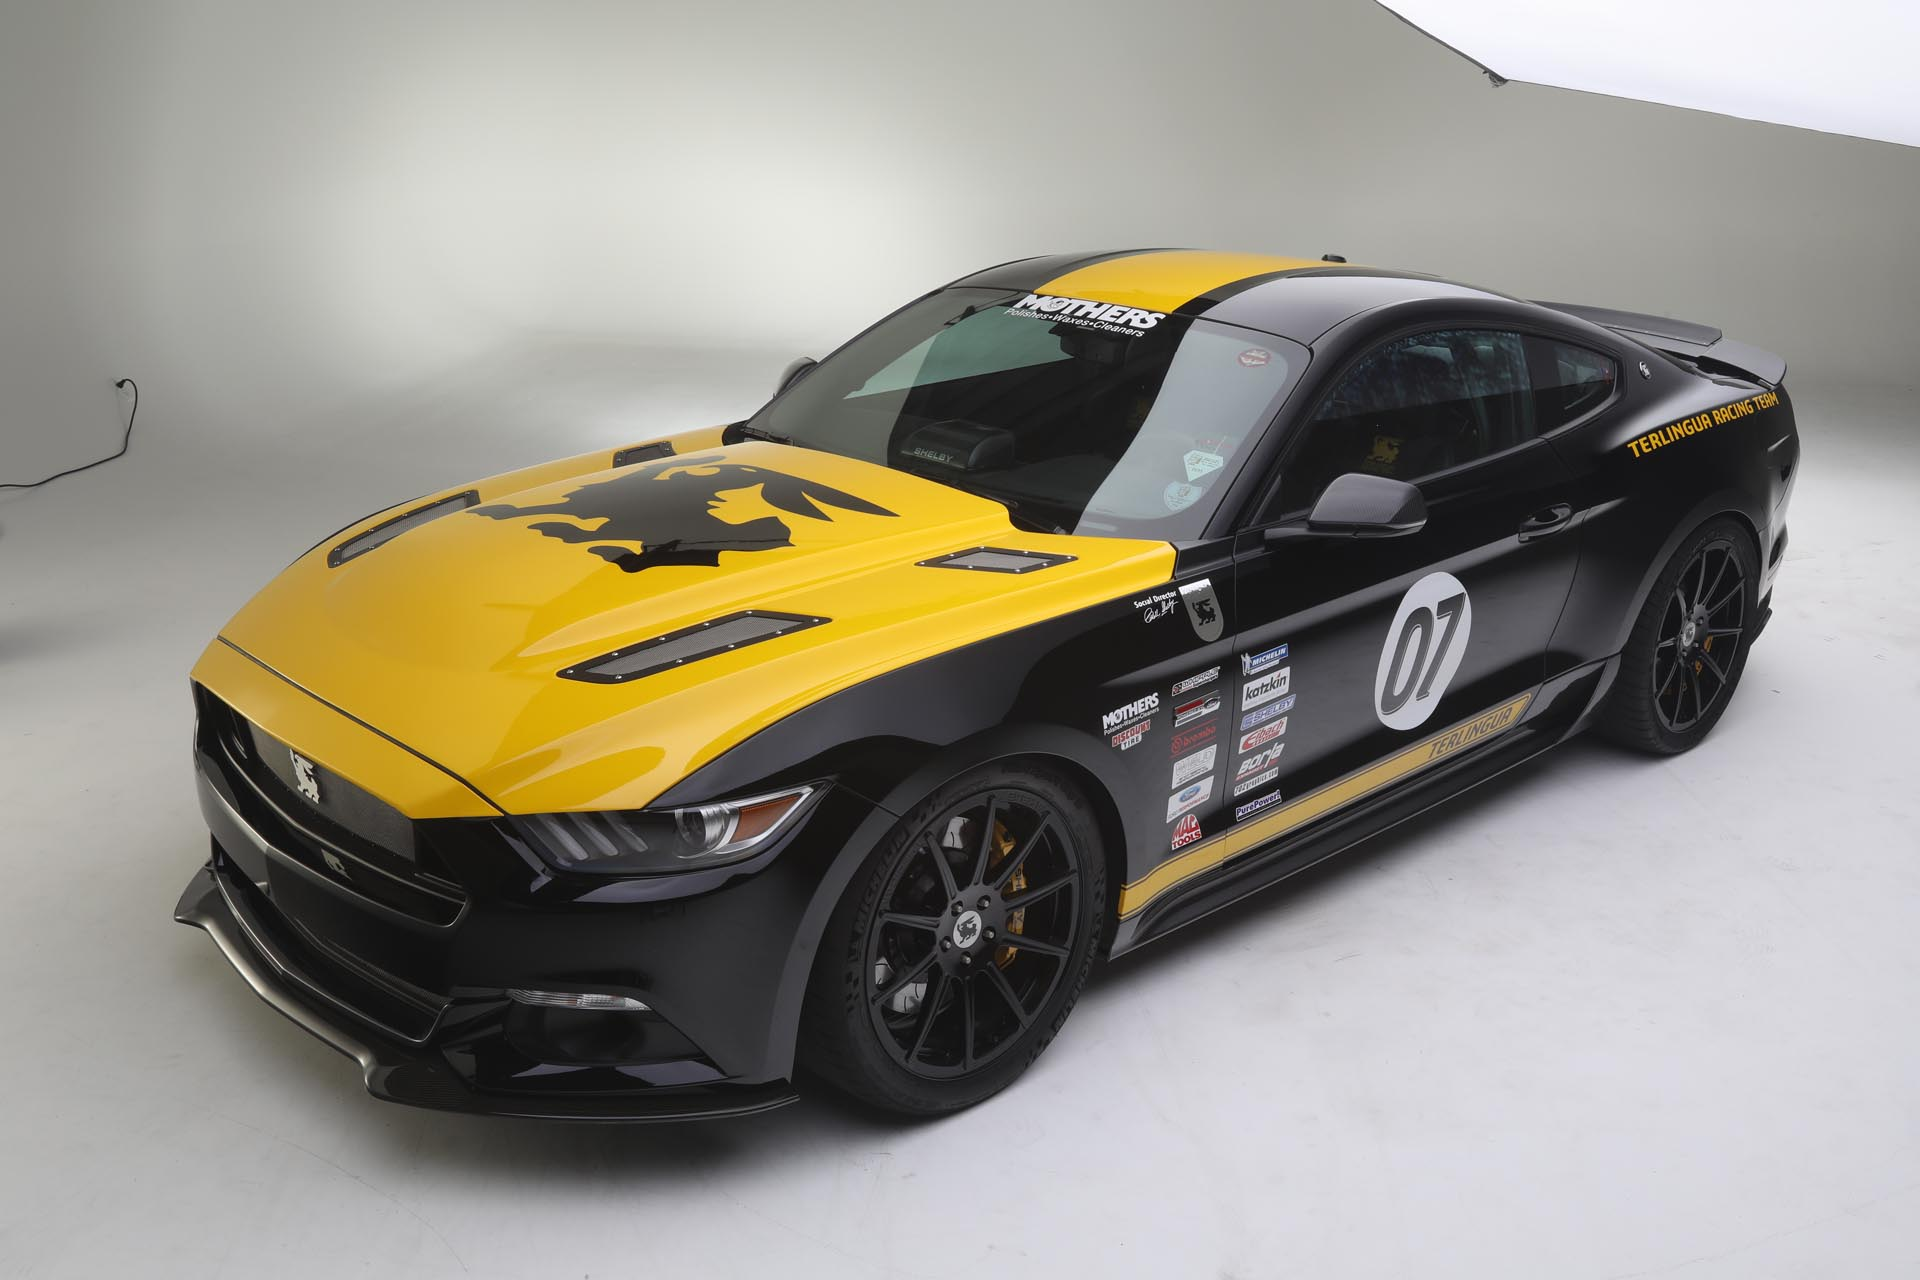 2016 Ford Shelby Mustang Terlingua GT Coupe